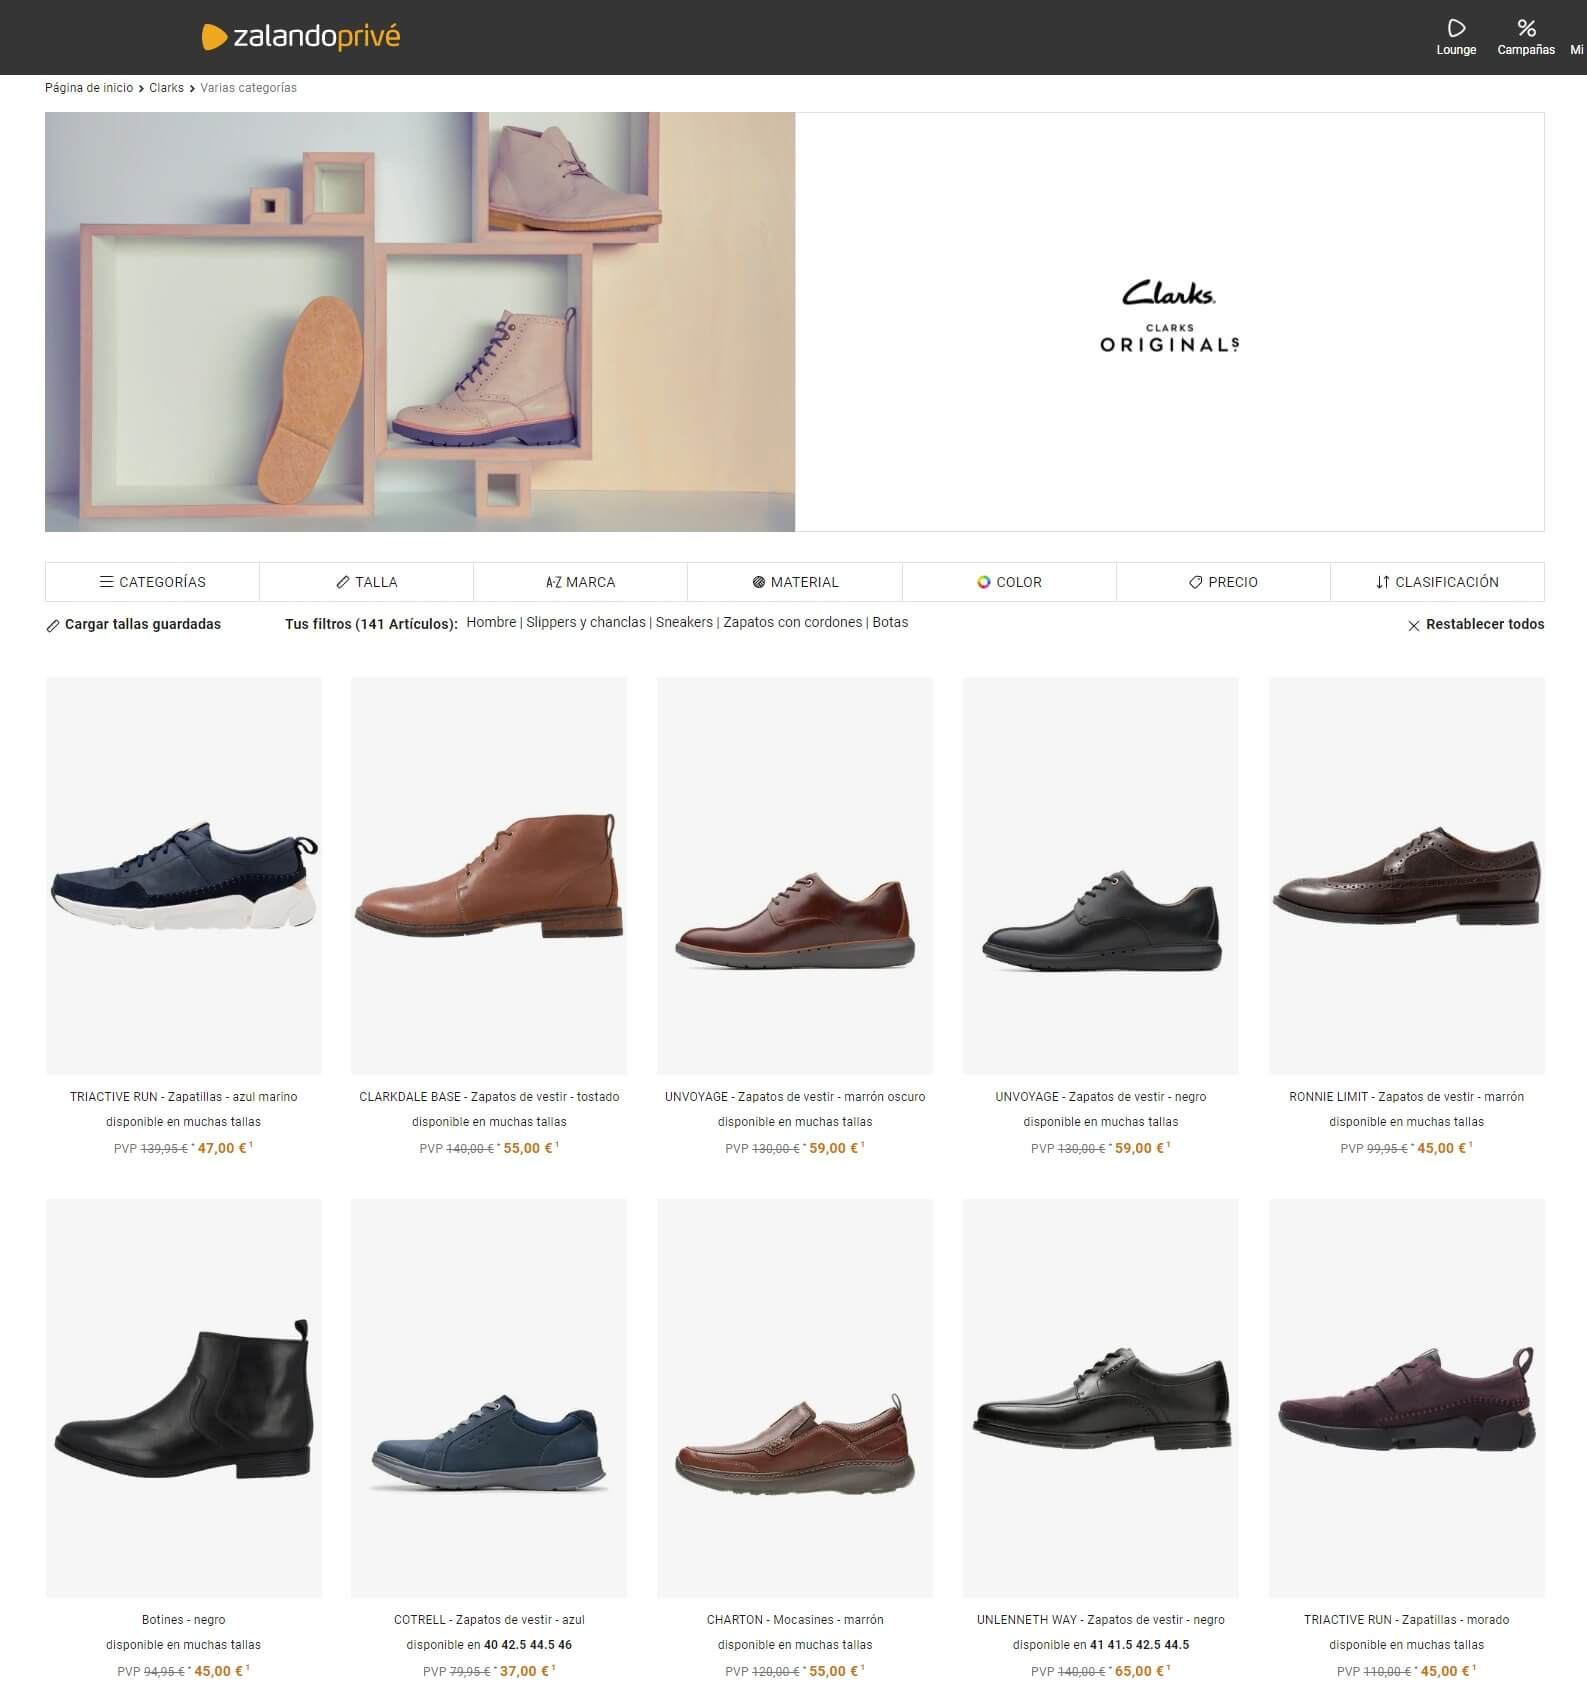 zapatos clarks outlet